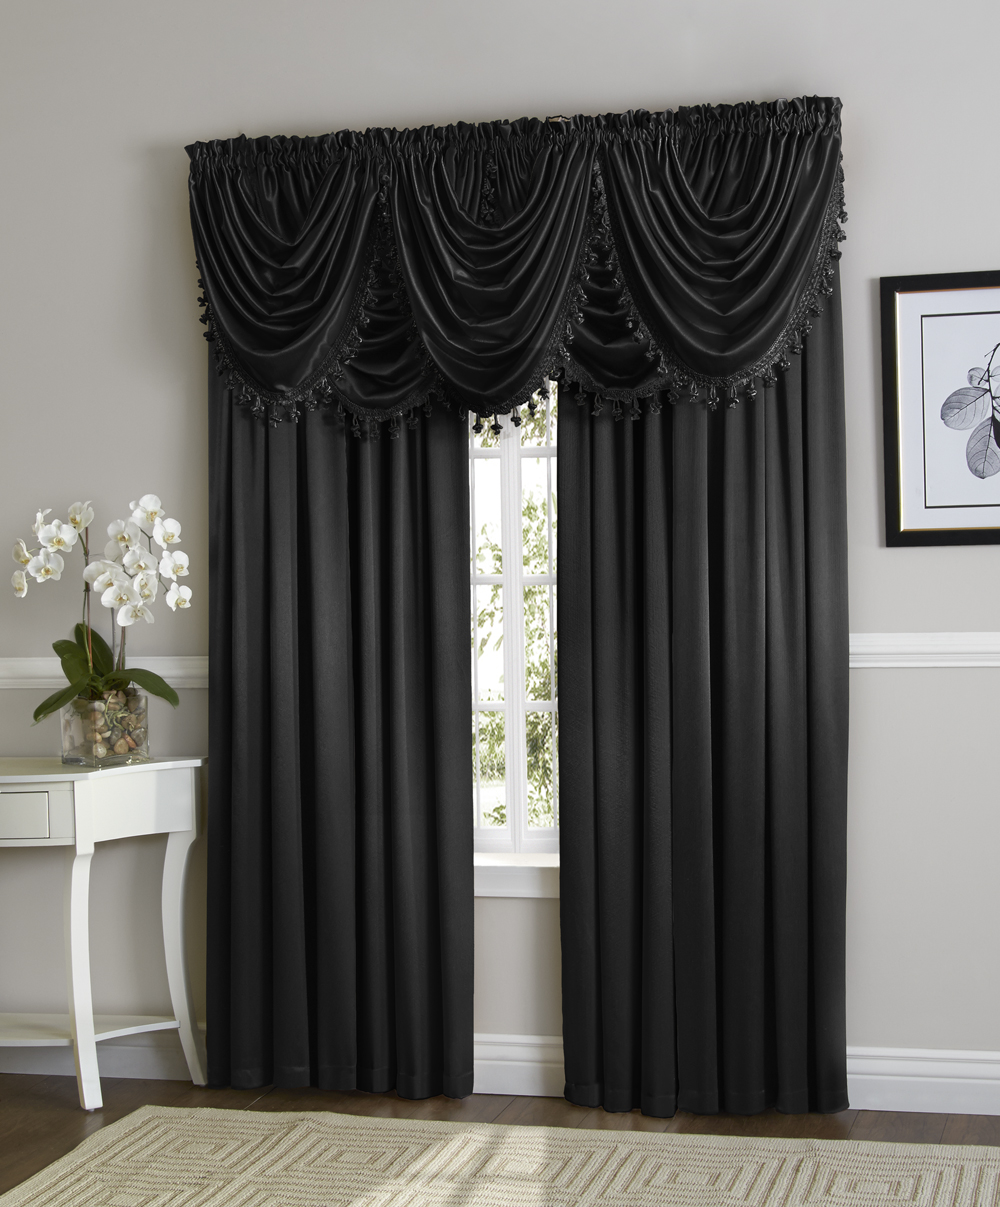 Hyatt Window Curtain & Fringed Valance Complete 9 Piece Window Treatment Set Black by